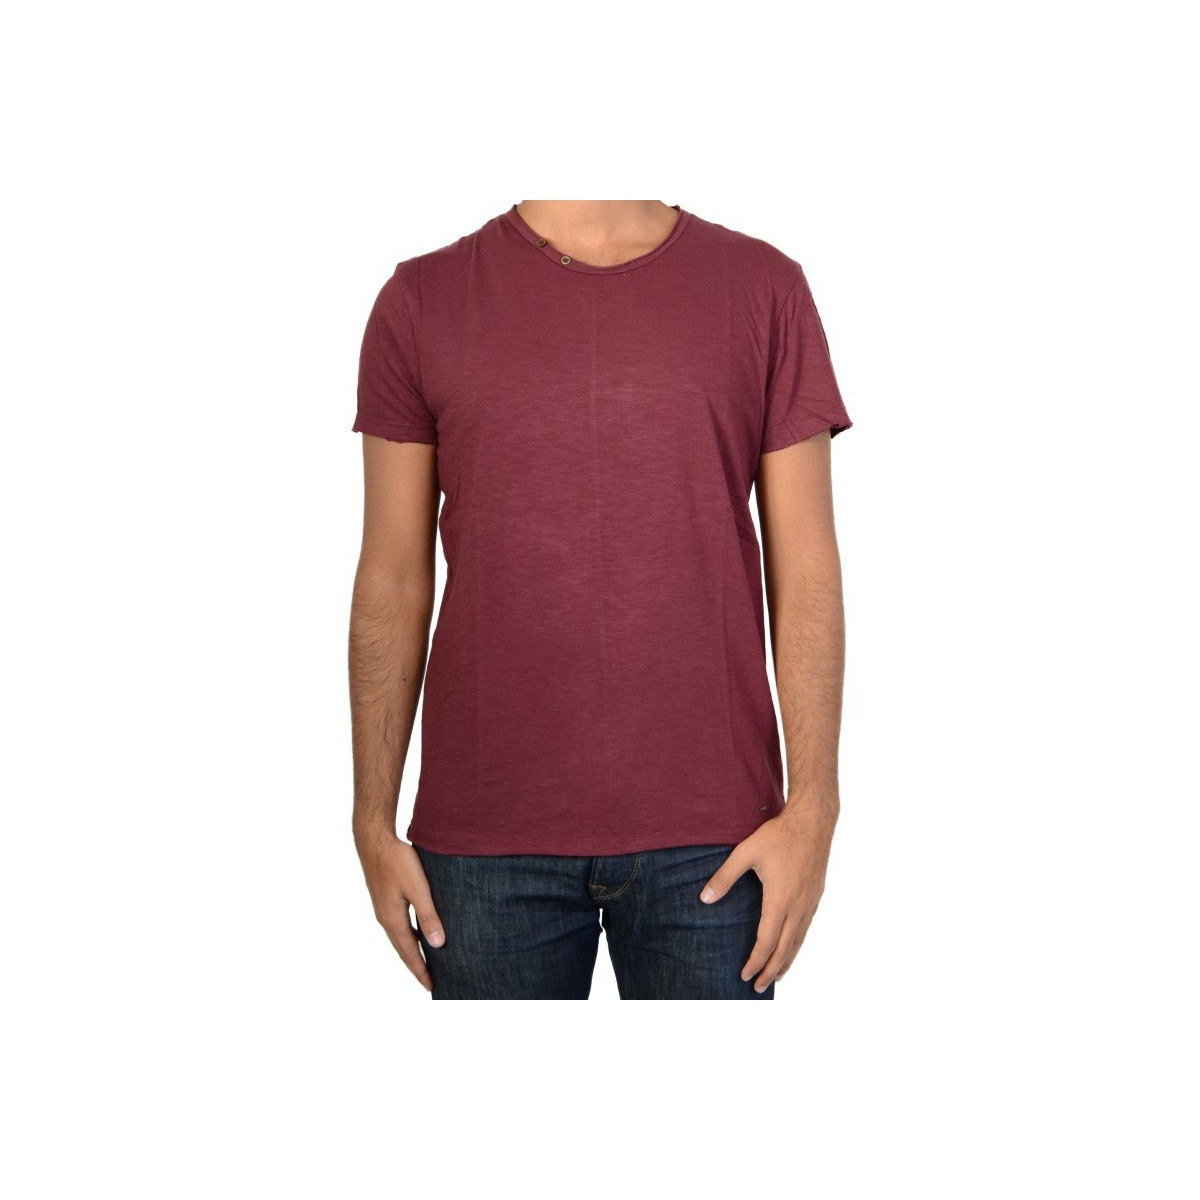 Trez Tee Shirt  Topo6 357 Bordeau Rouge